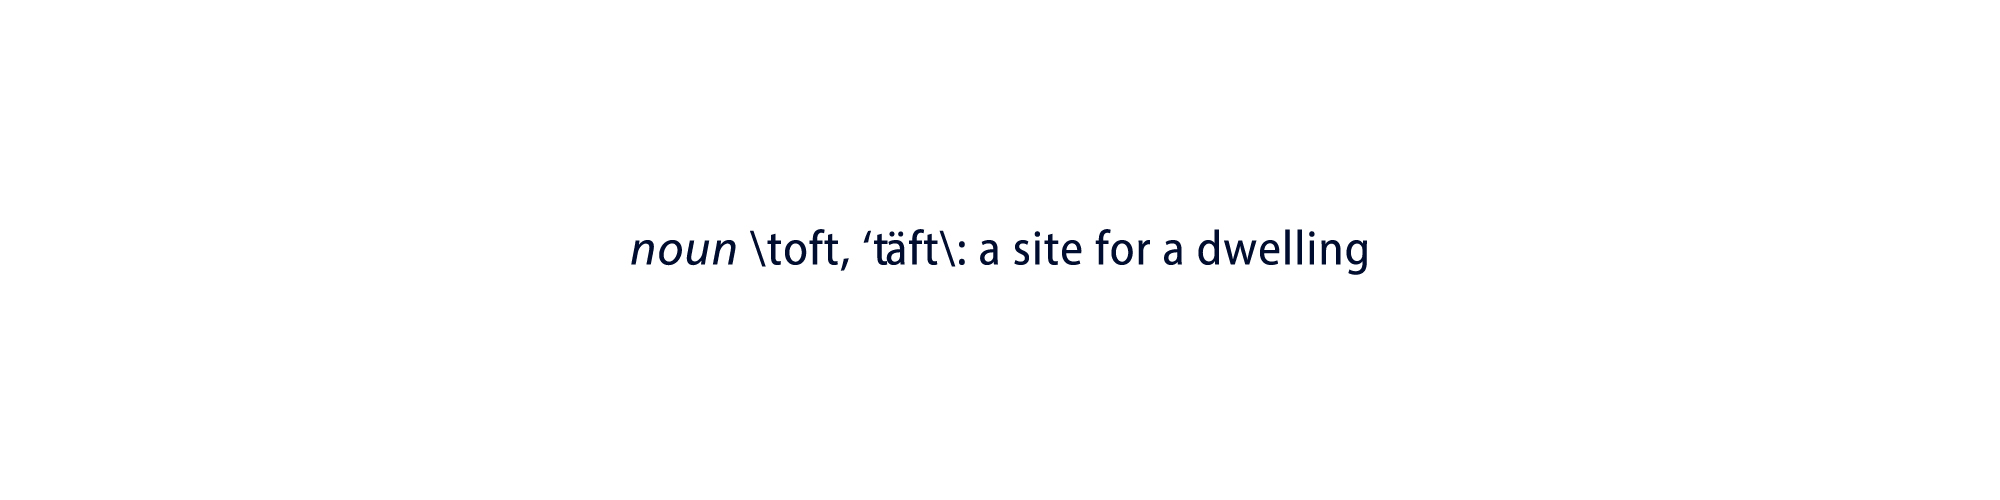 Definition of toft in as found in the dictionary